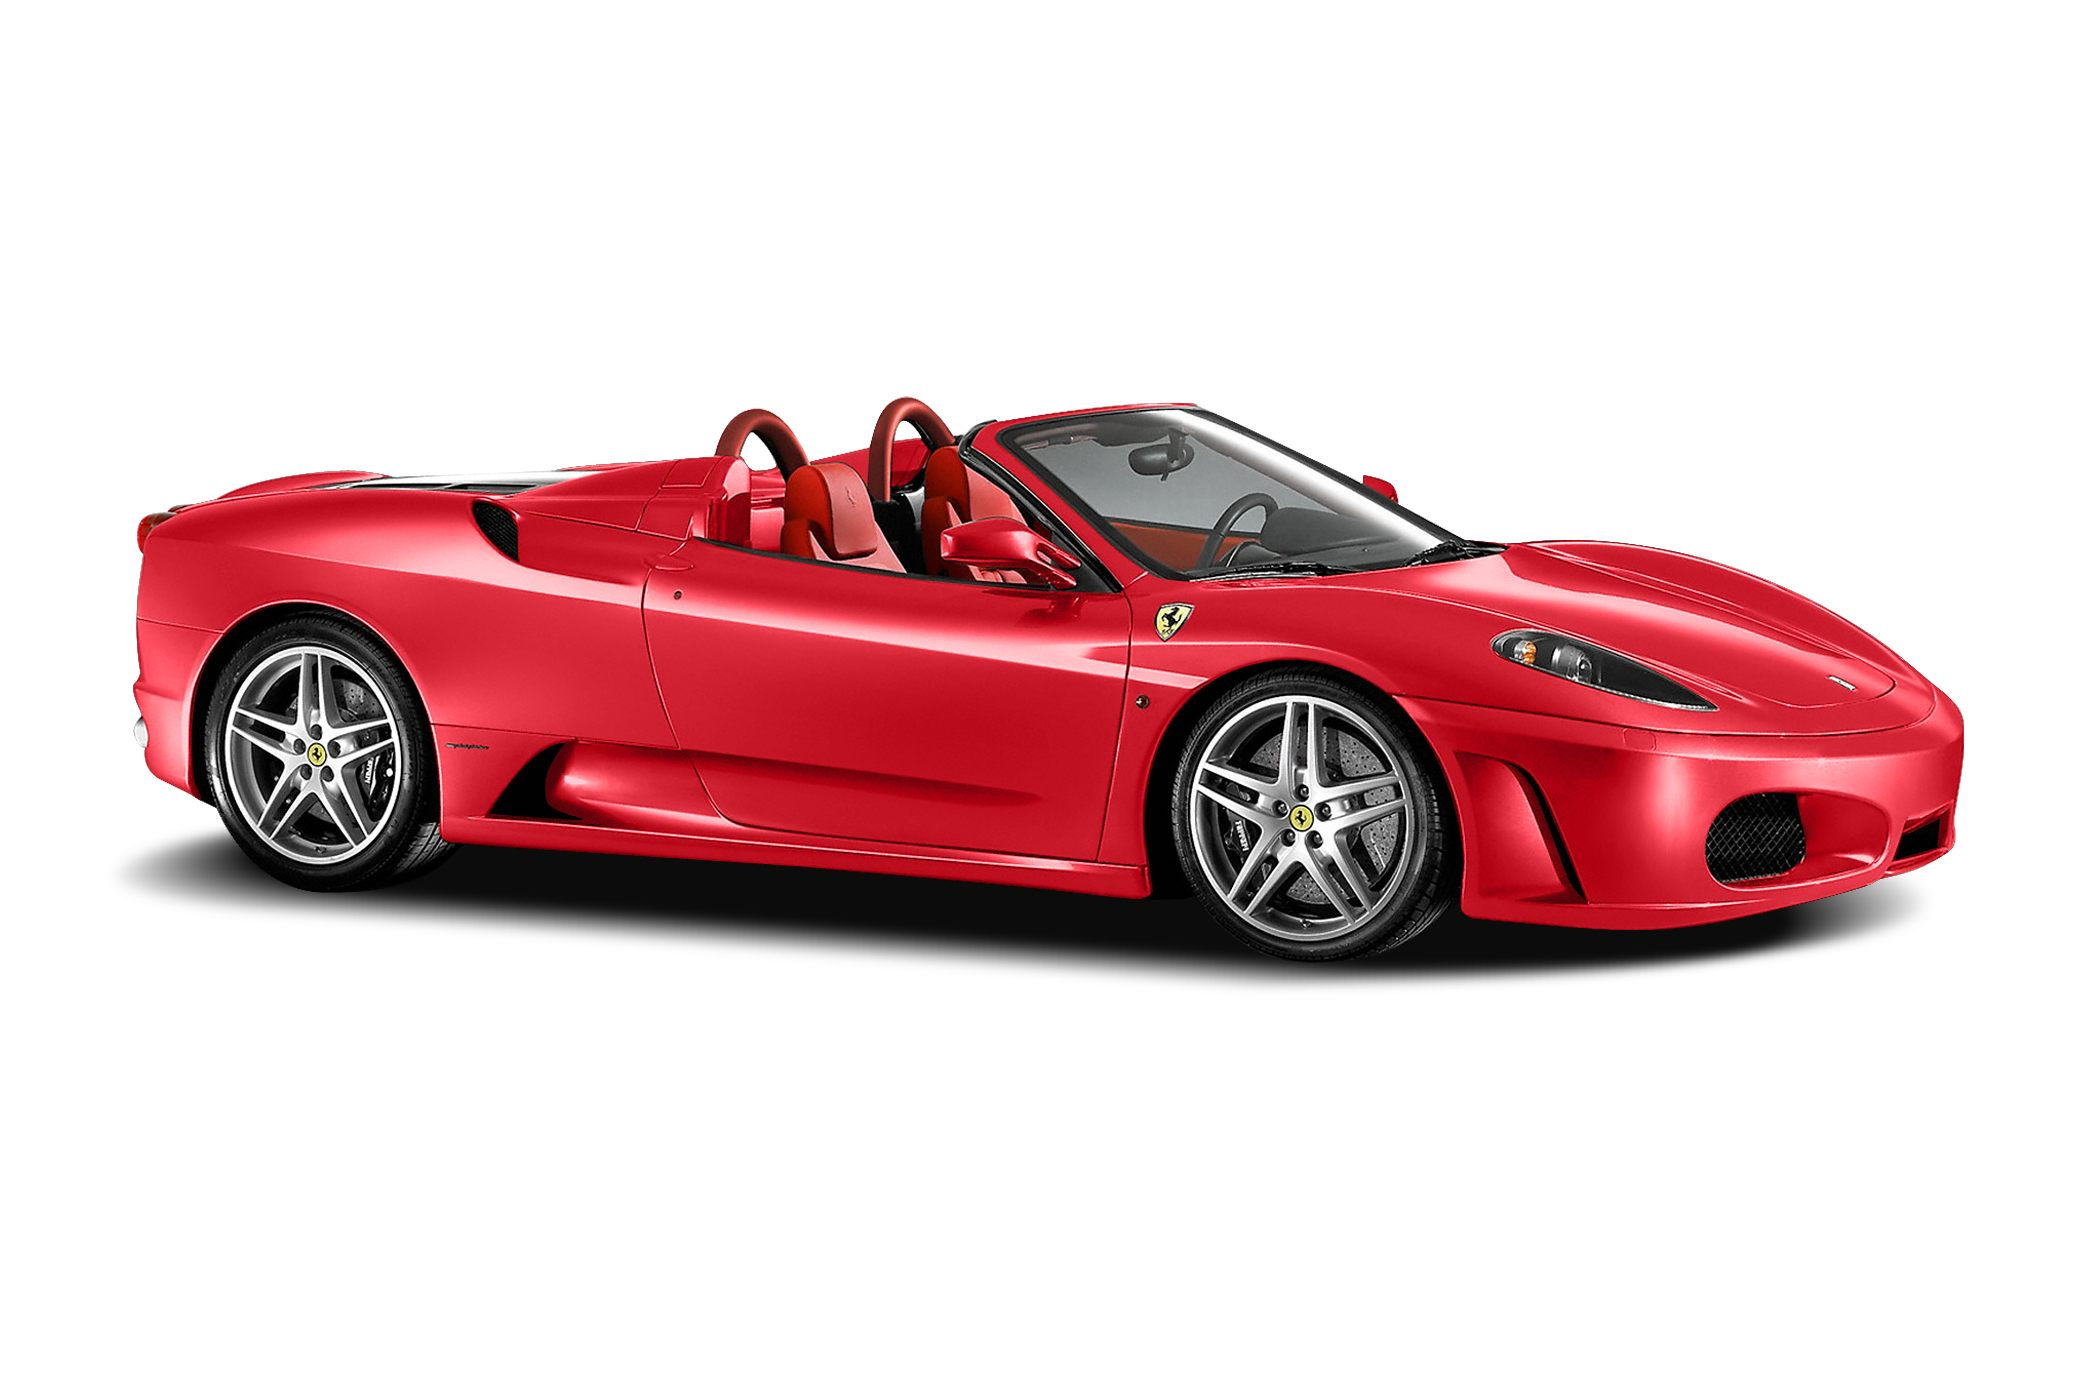 2009 Ferrari F430 Spider 2dr Convertible Pricing And Options